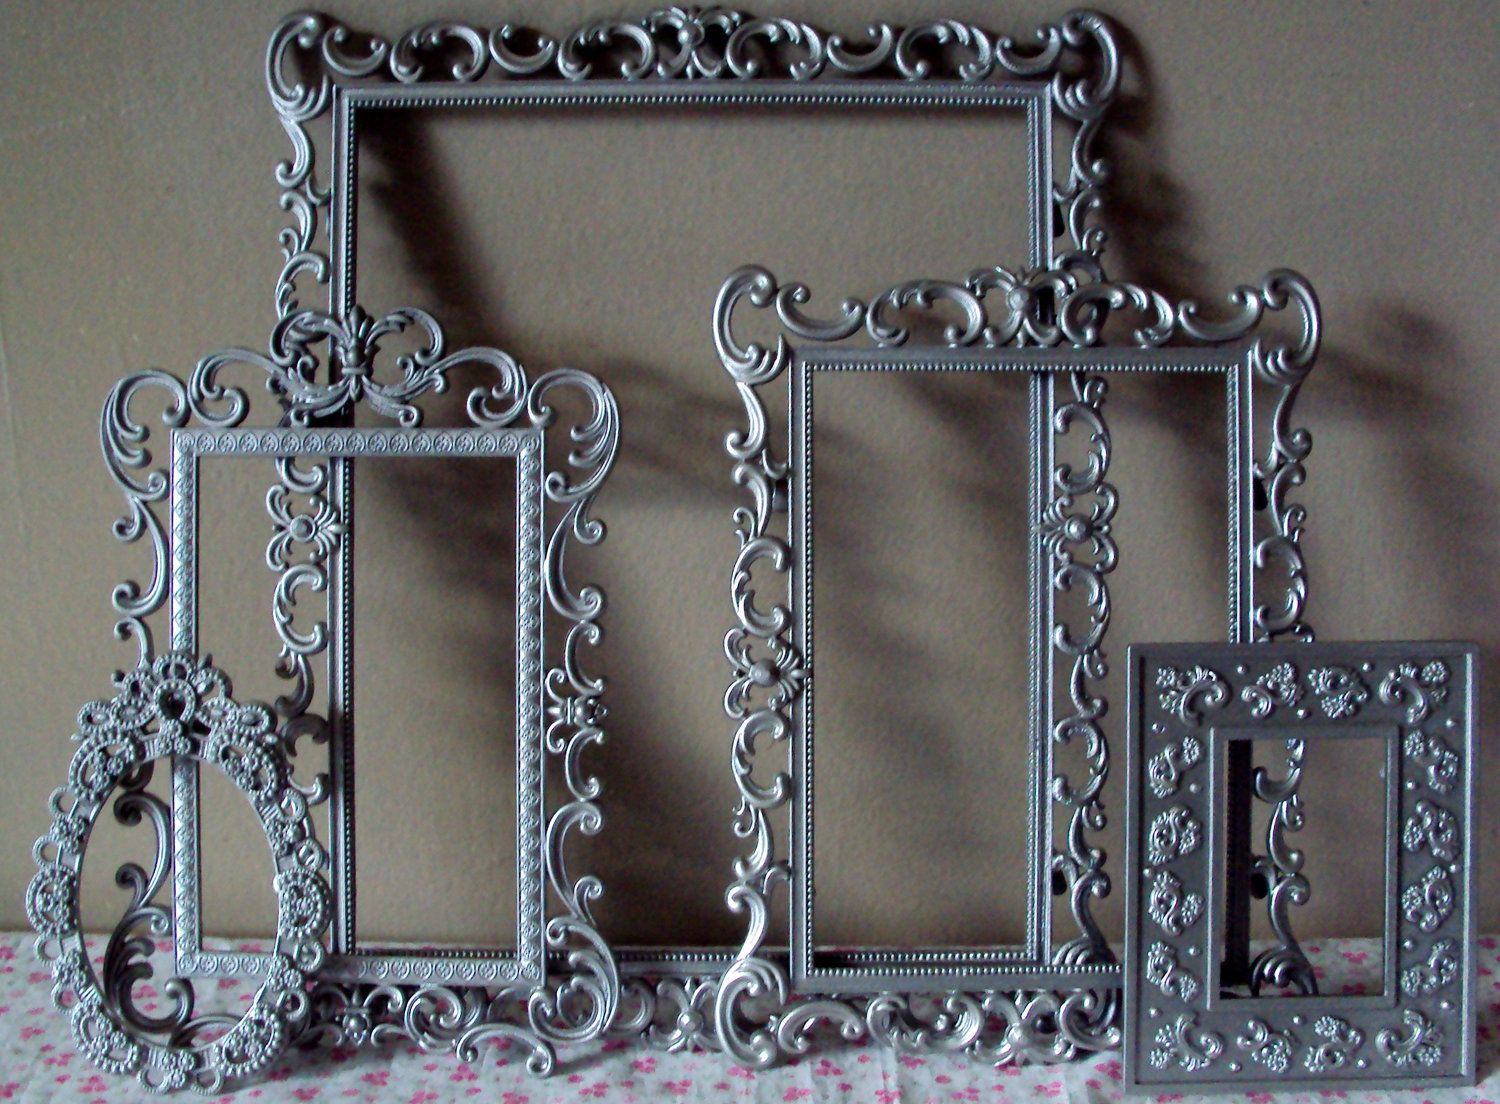 any color or pewter brushed nickel gray silver ornate picture frames metal frames wedding romantic cottage frames with glass backing